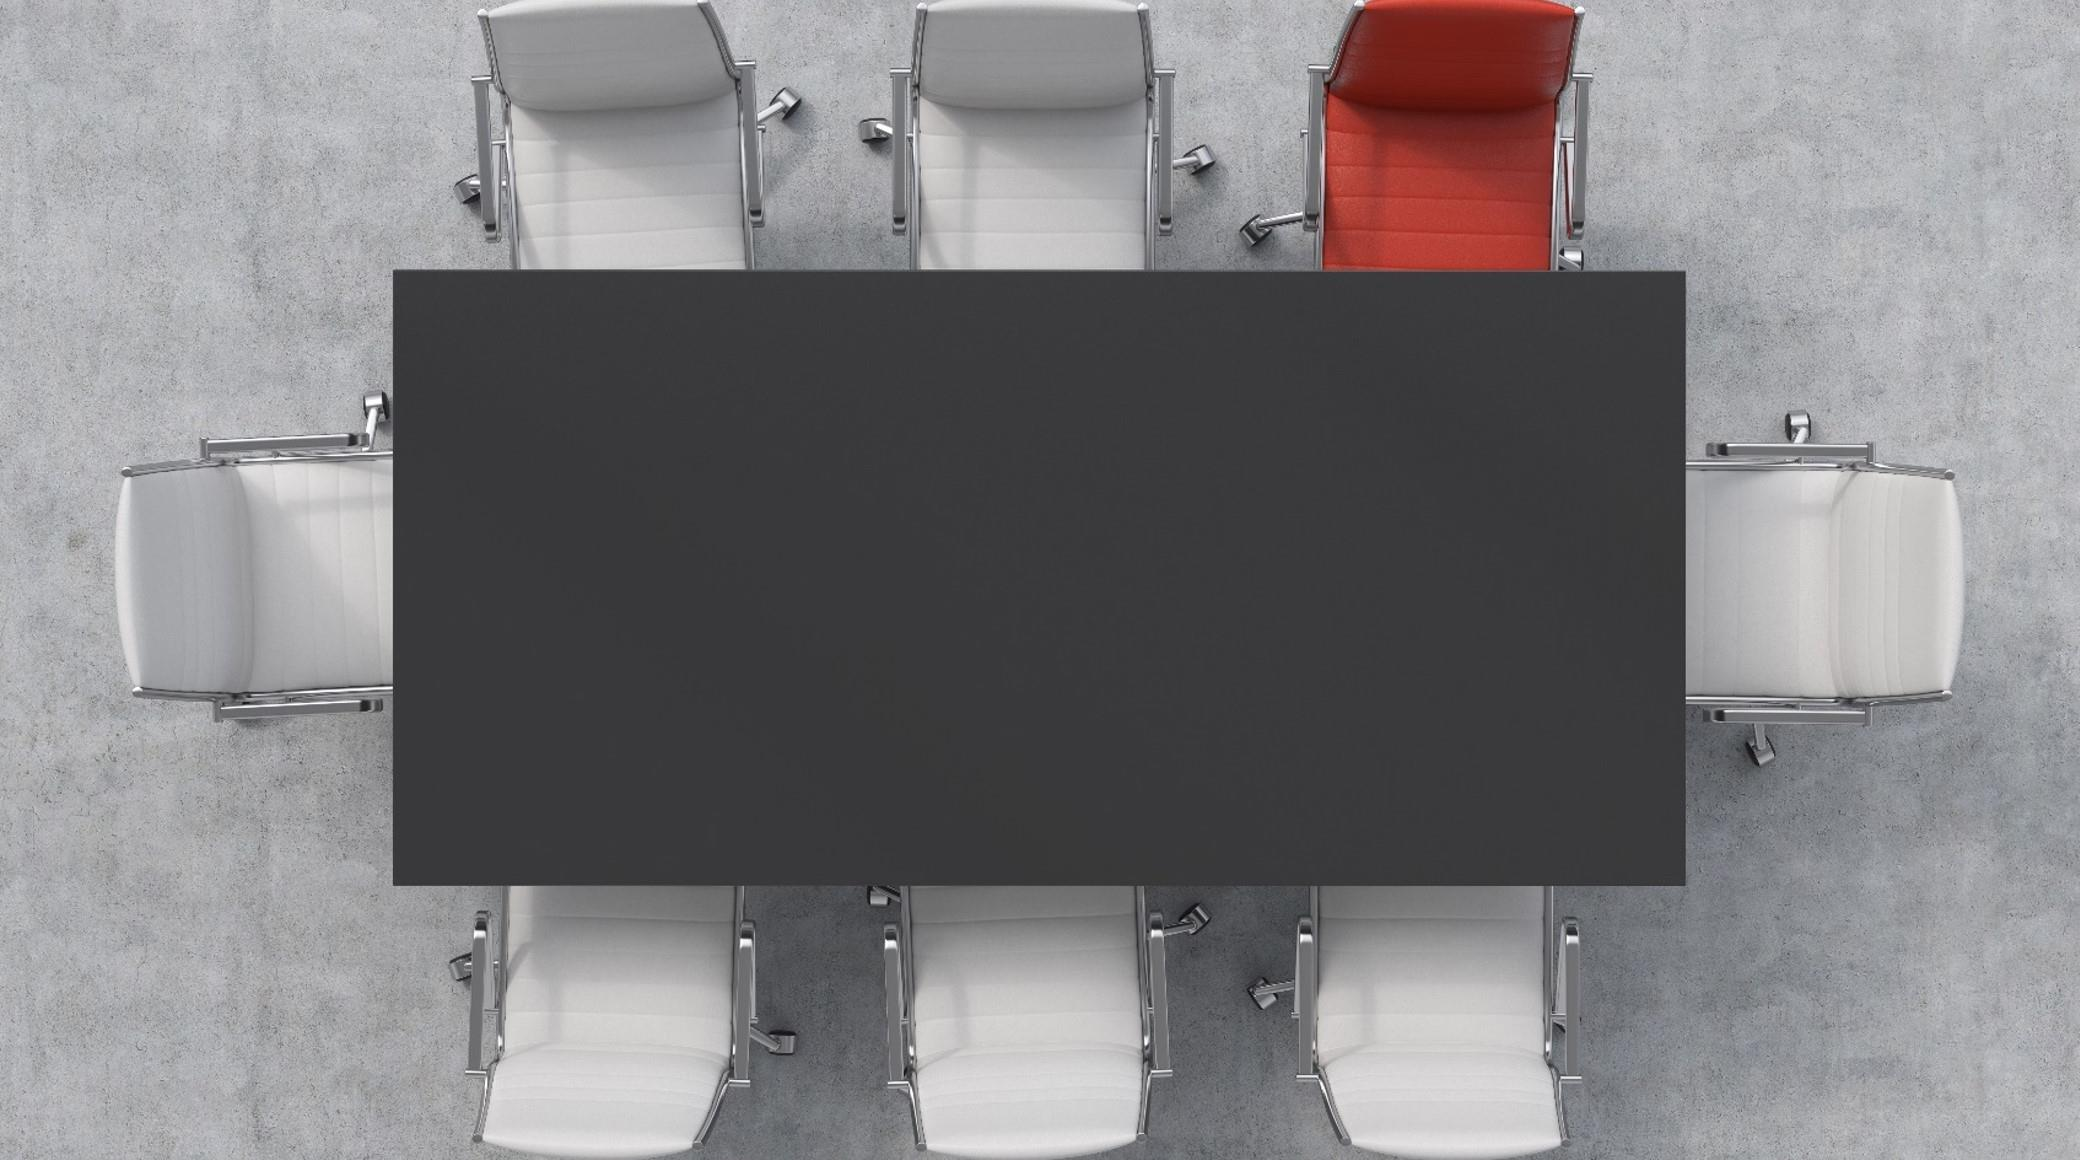 Aerial view of rectangular black table surrounded by white chairs plus one red chair